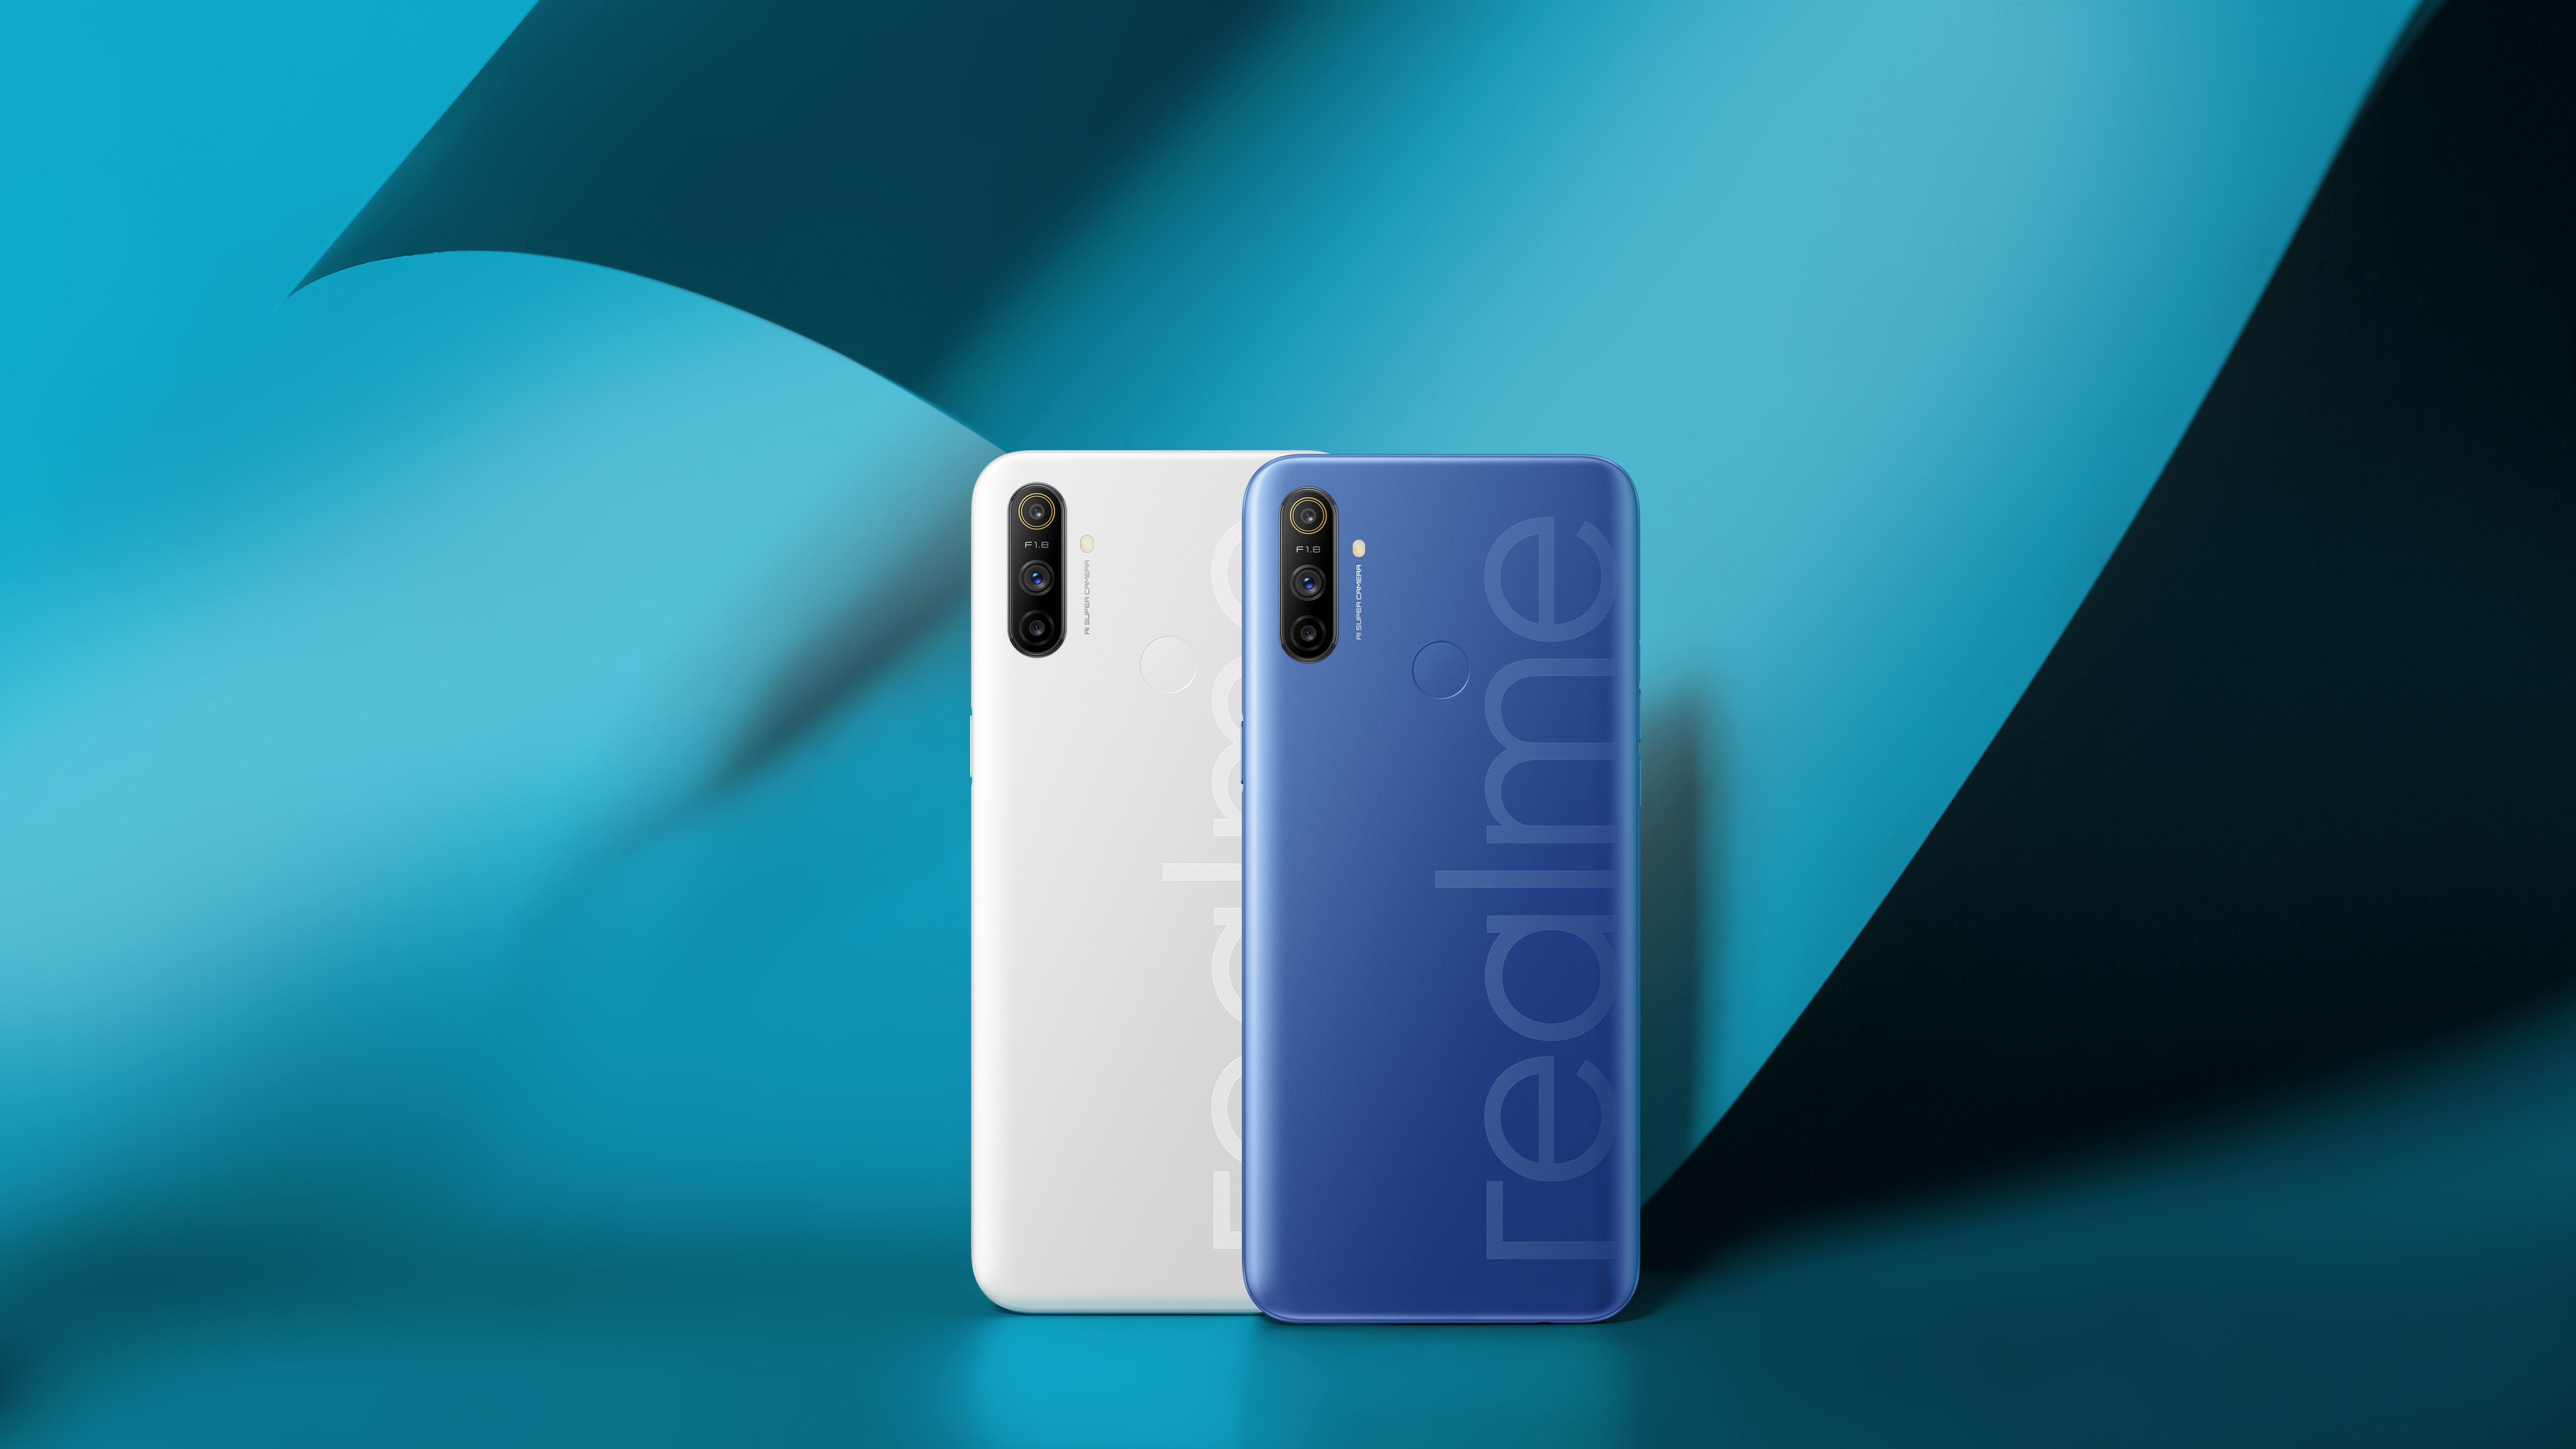 The Realme Narzo 10 is priced at  <span class='webrupee'>₹</span>11,999 while the Realme Narzo 10A is priced at  <span class='webrupee'>₹</span>8,499.